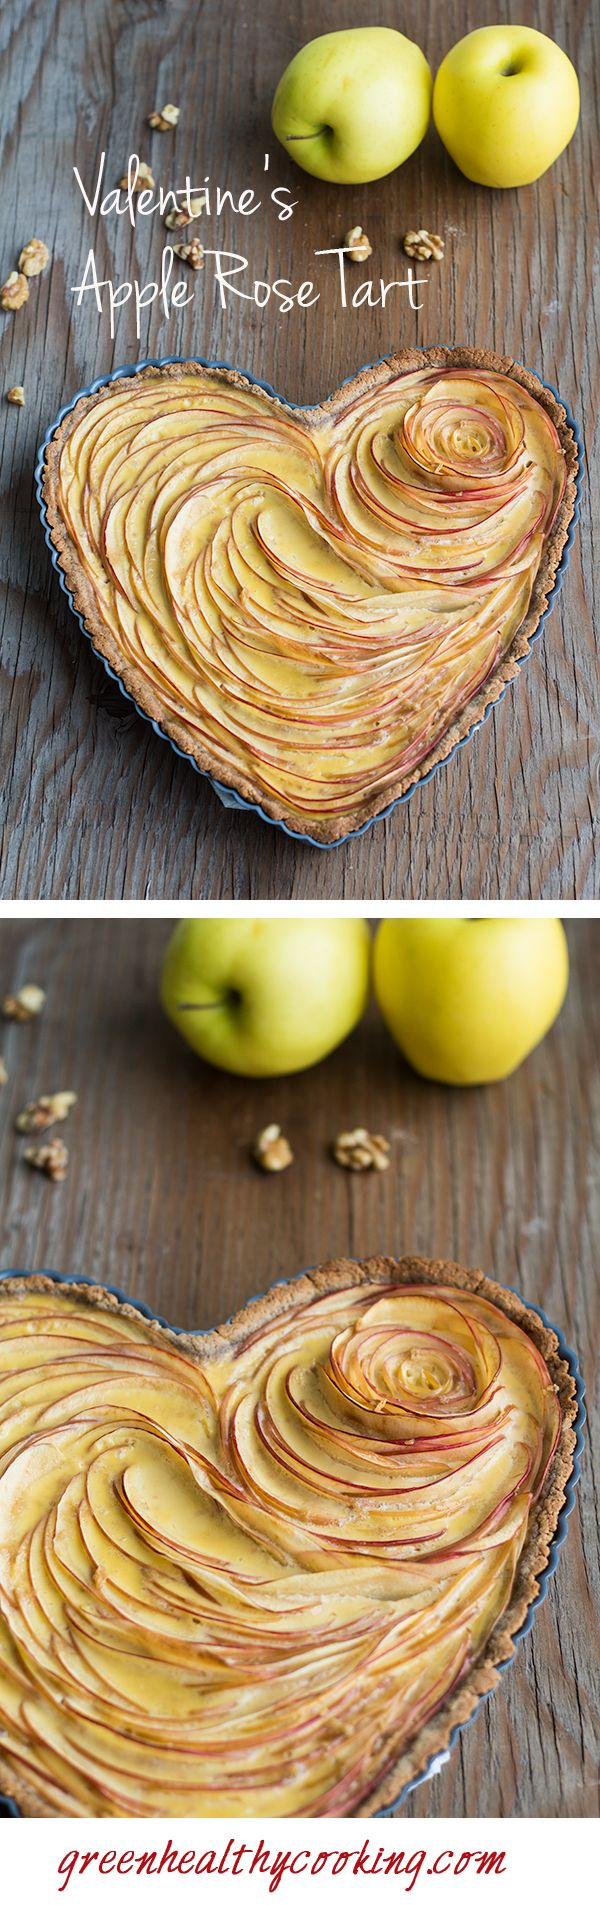 This Valentine's Apple Rose Tart recipe teaches you how to prepare a beautiful and healthy nut flour apple pie with all the love for someone very special!